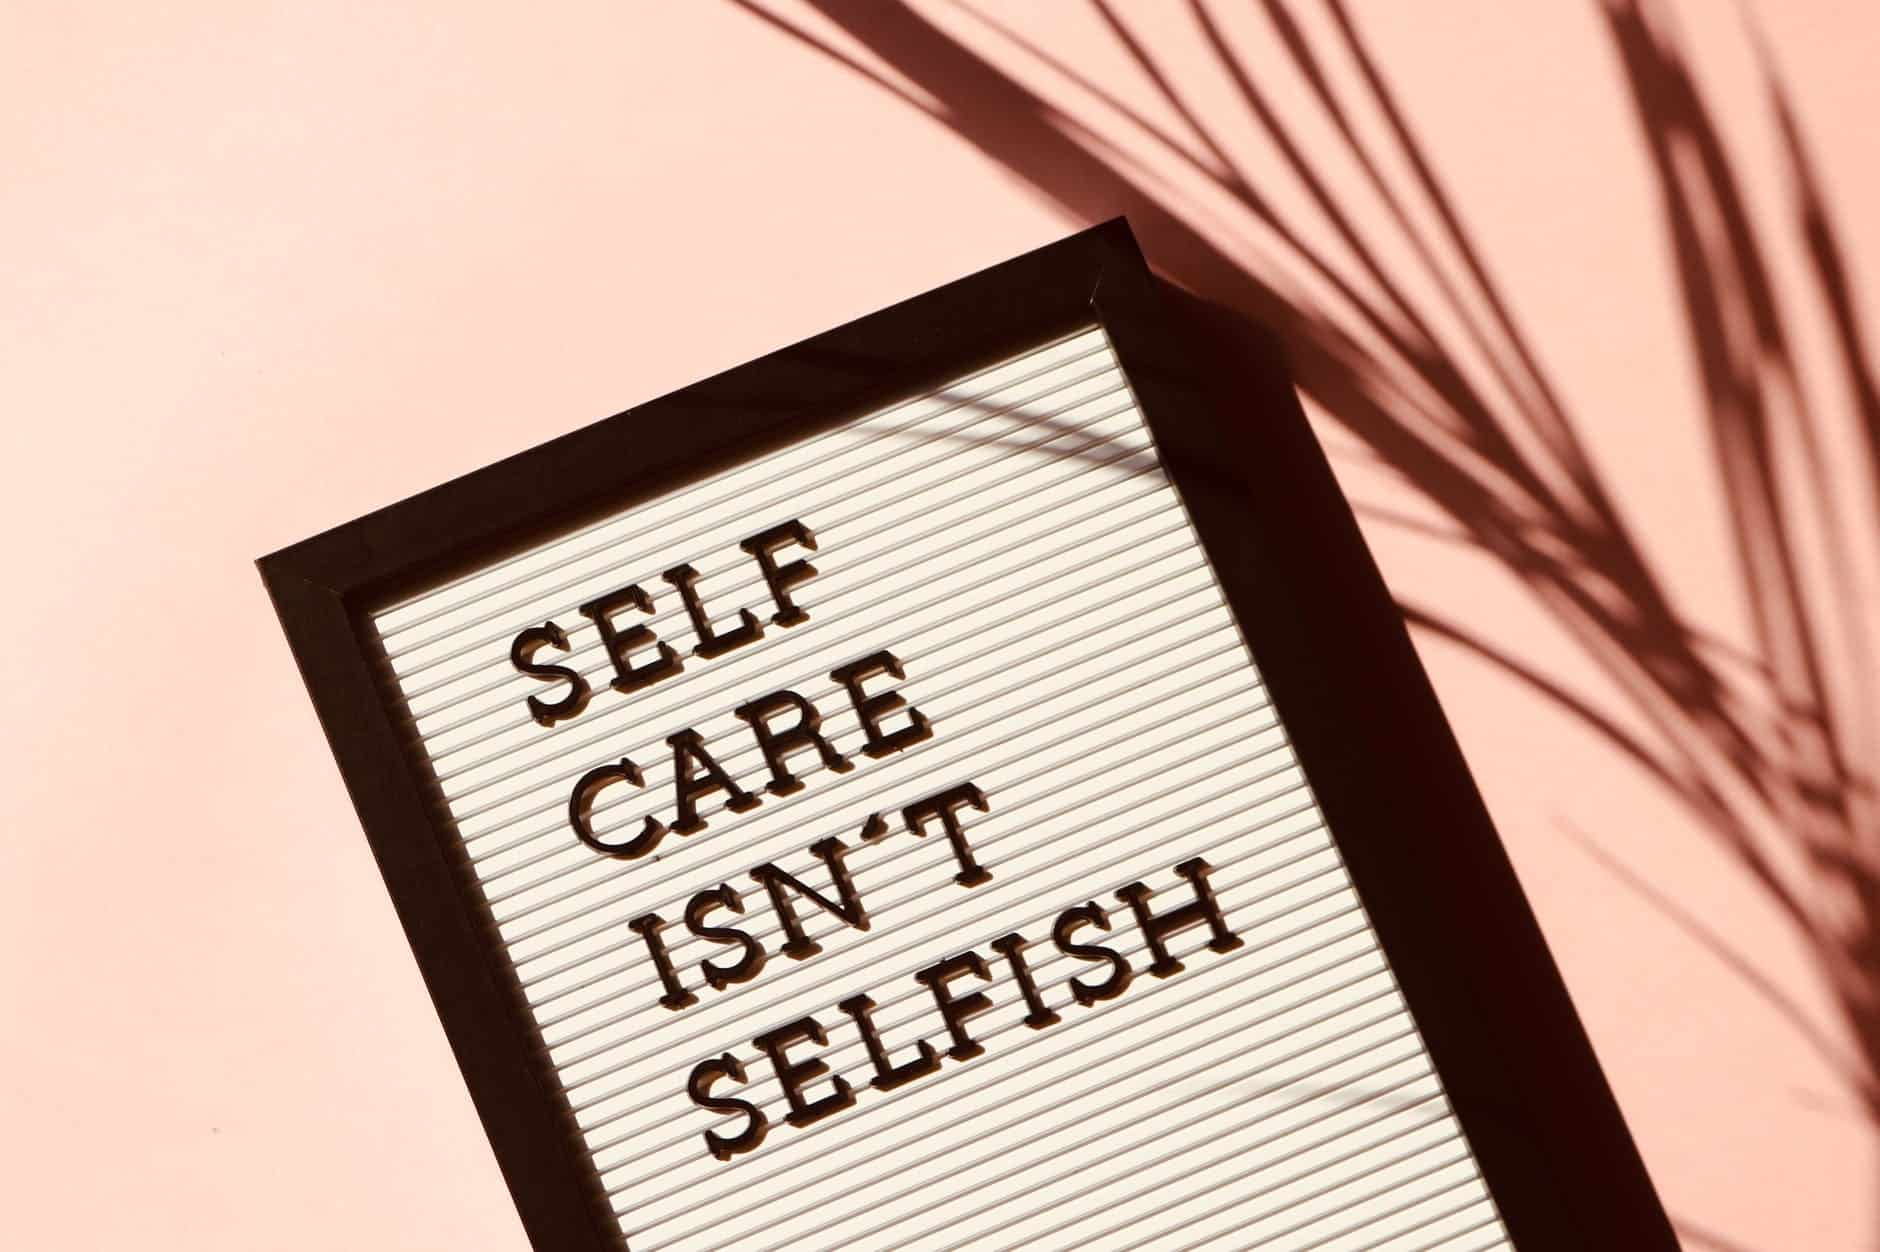 self-care isnt selfish signage